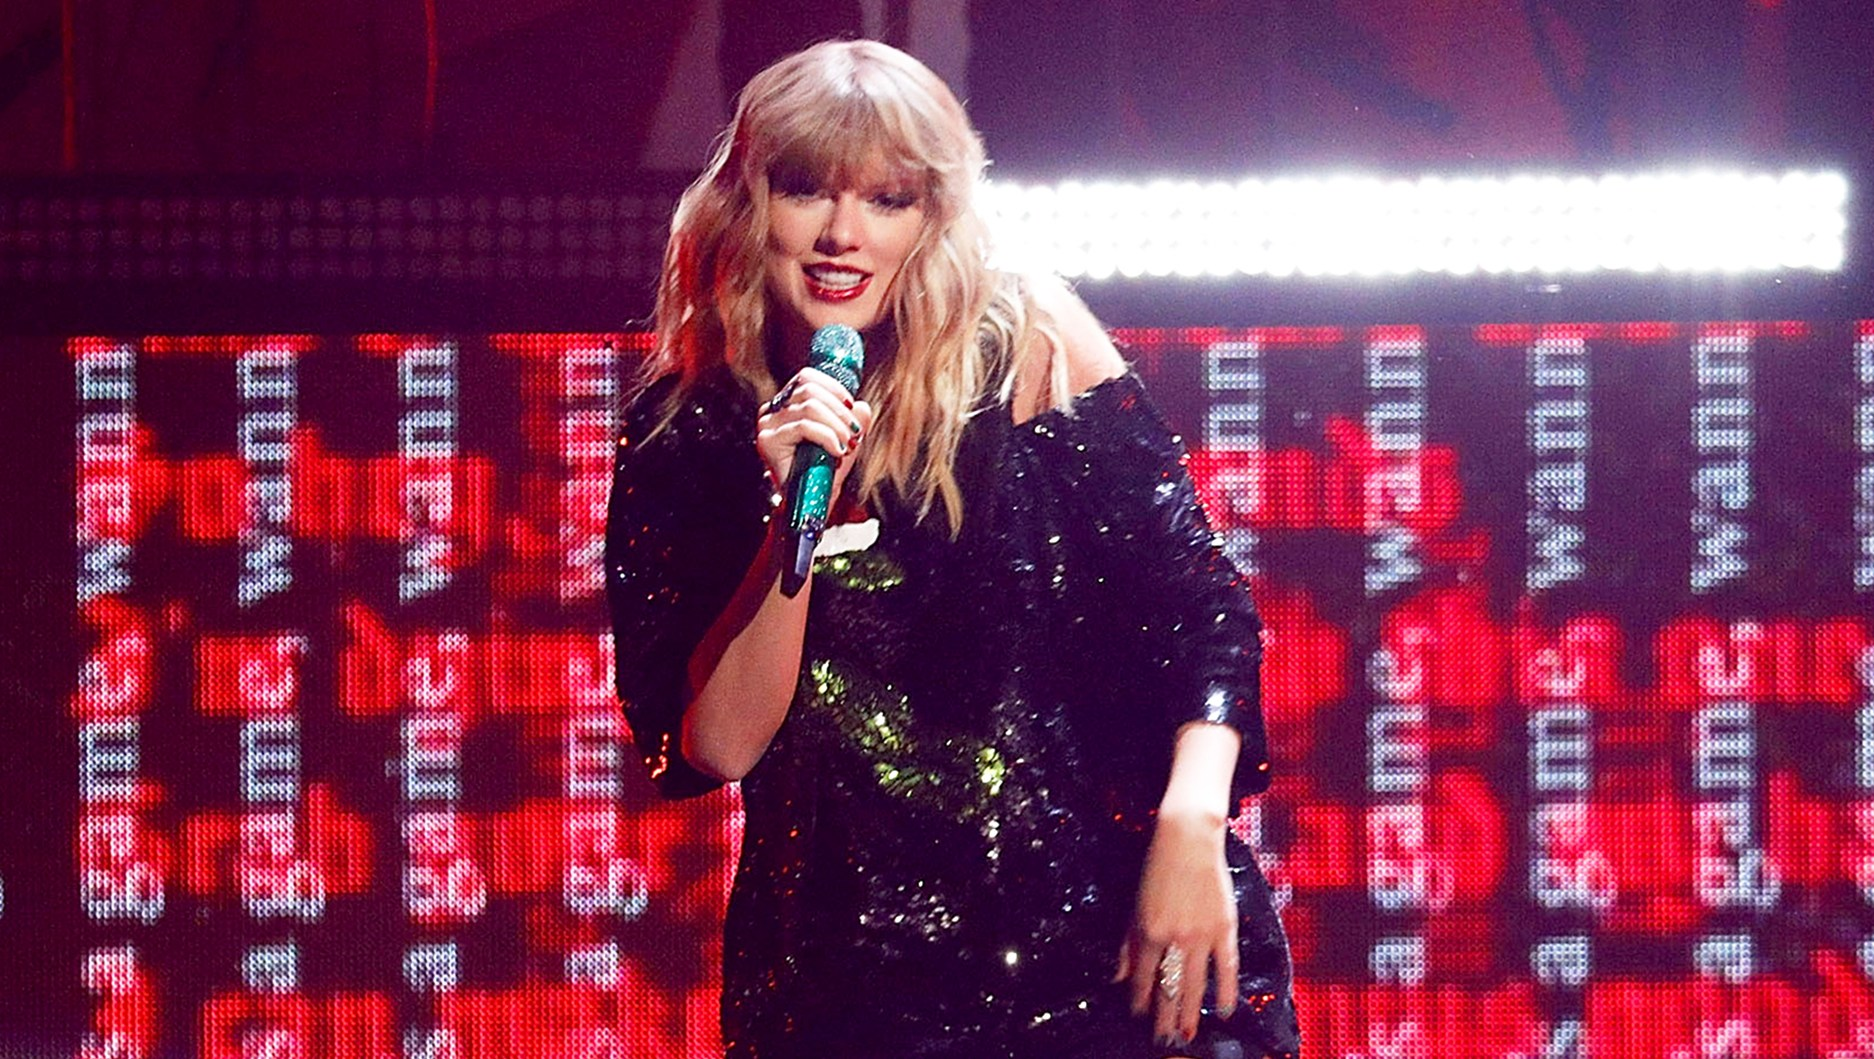 Taylor Swift performs during the 2017 Z100 Jingle Ball at Madison Square Garden in New York City.